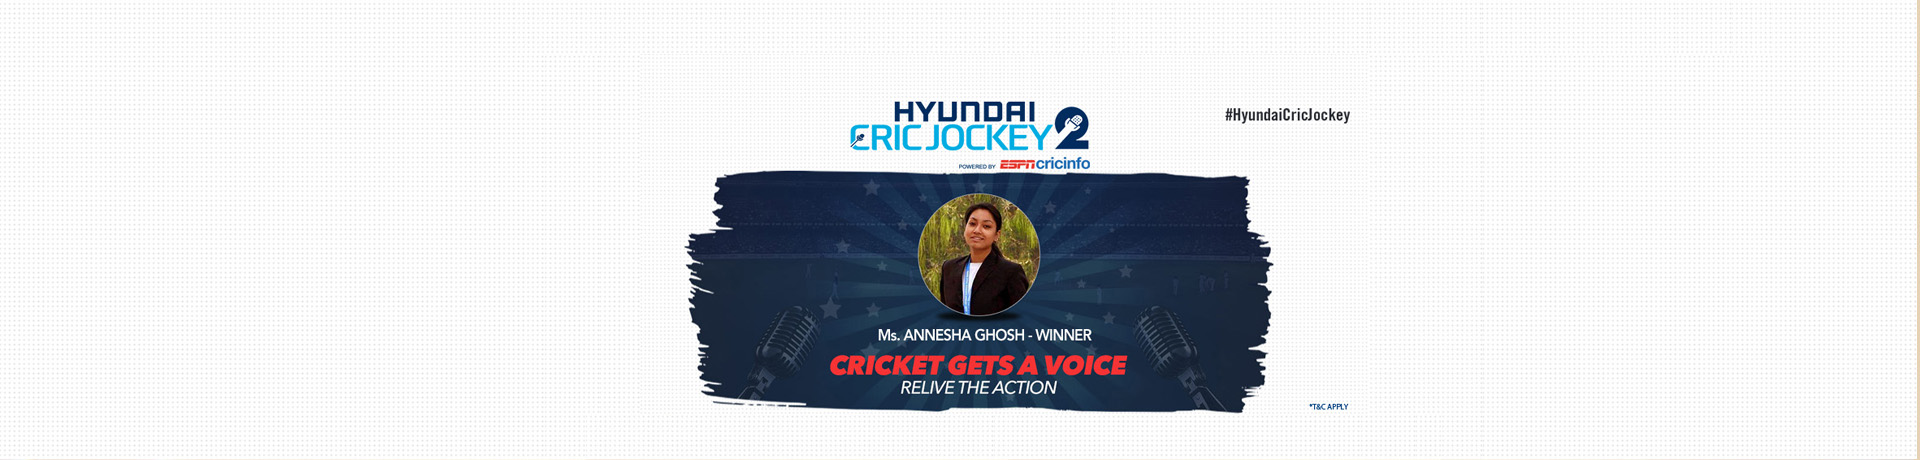 Hyundai CricJockey